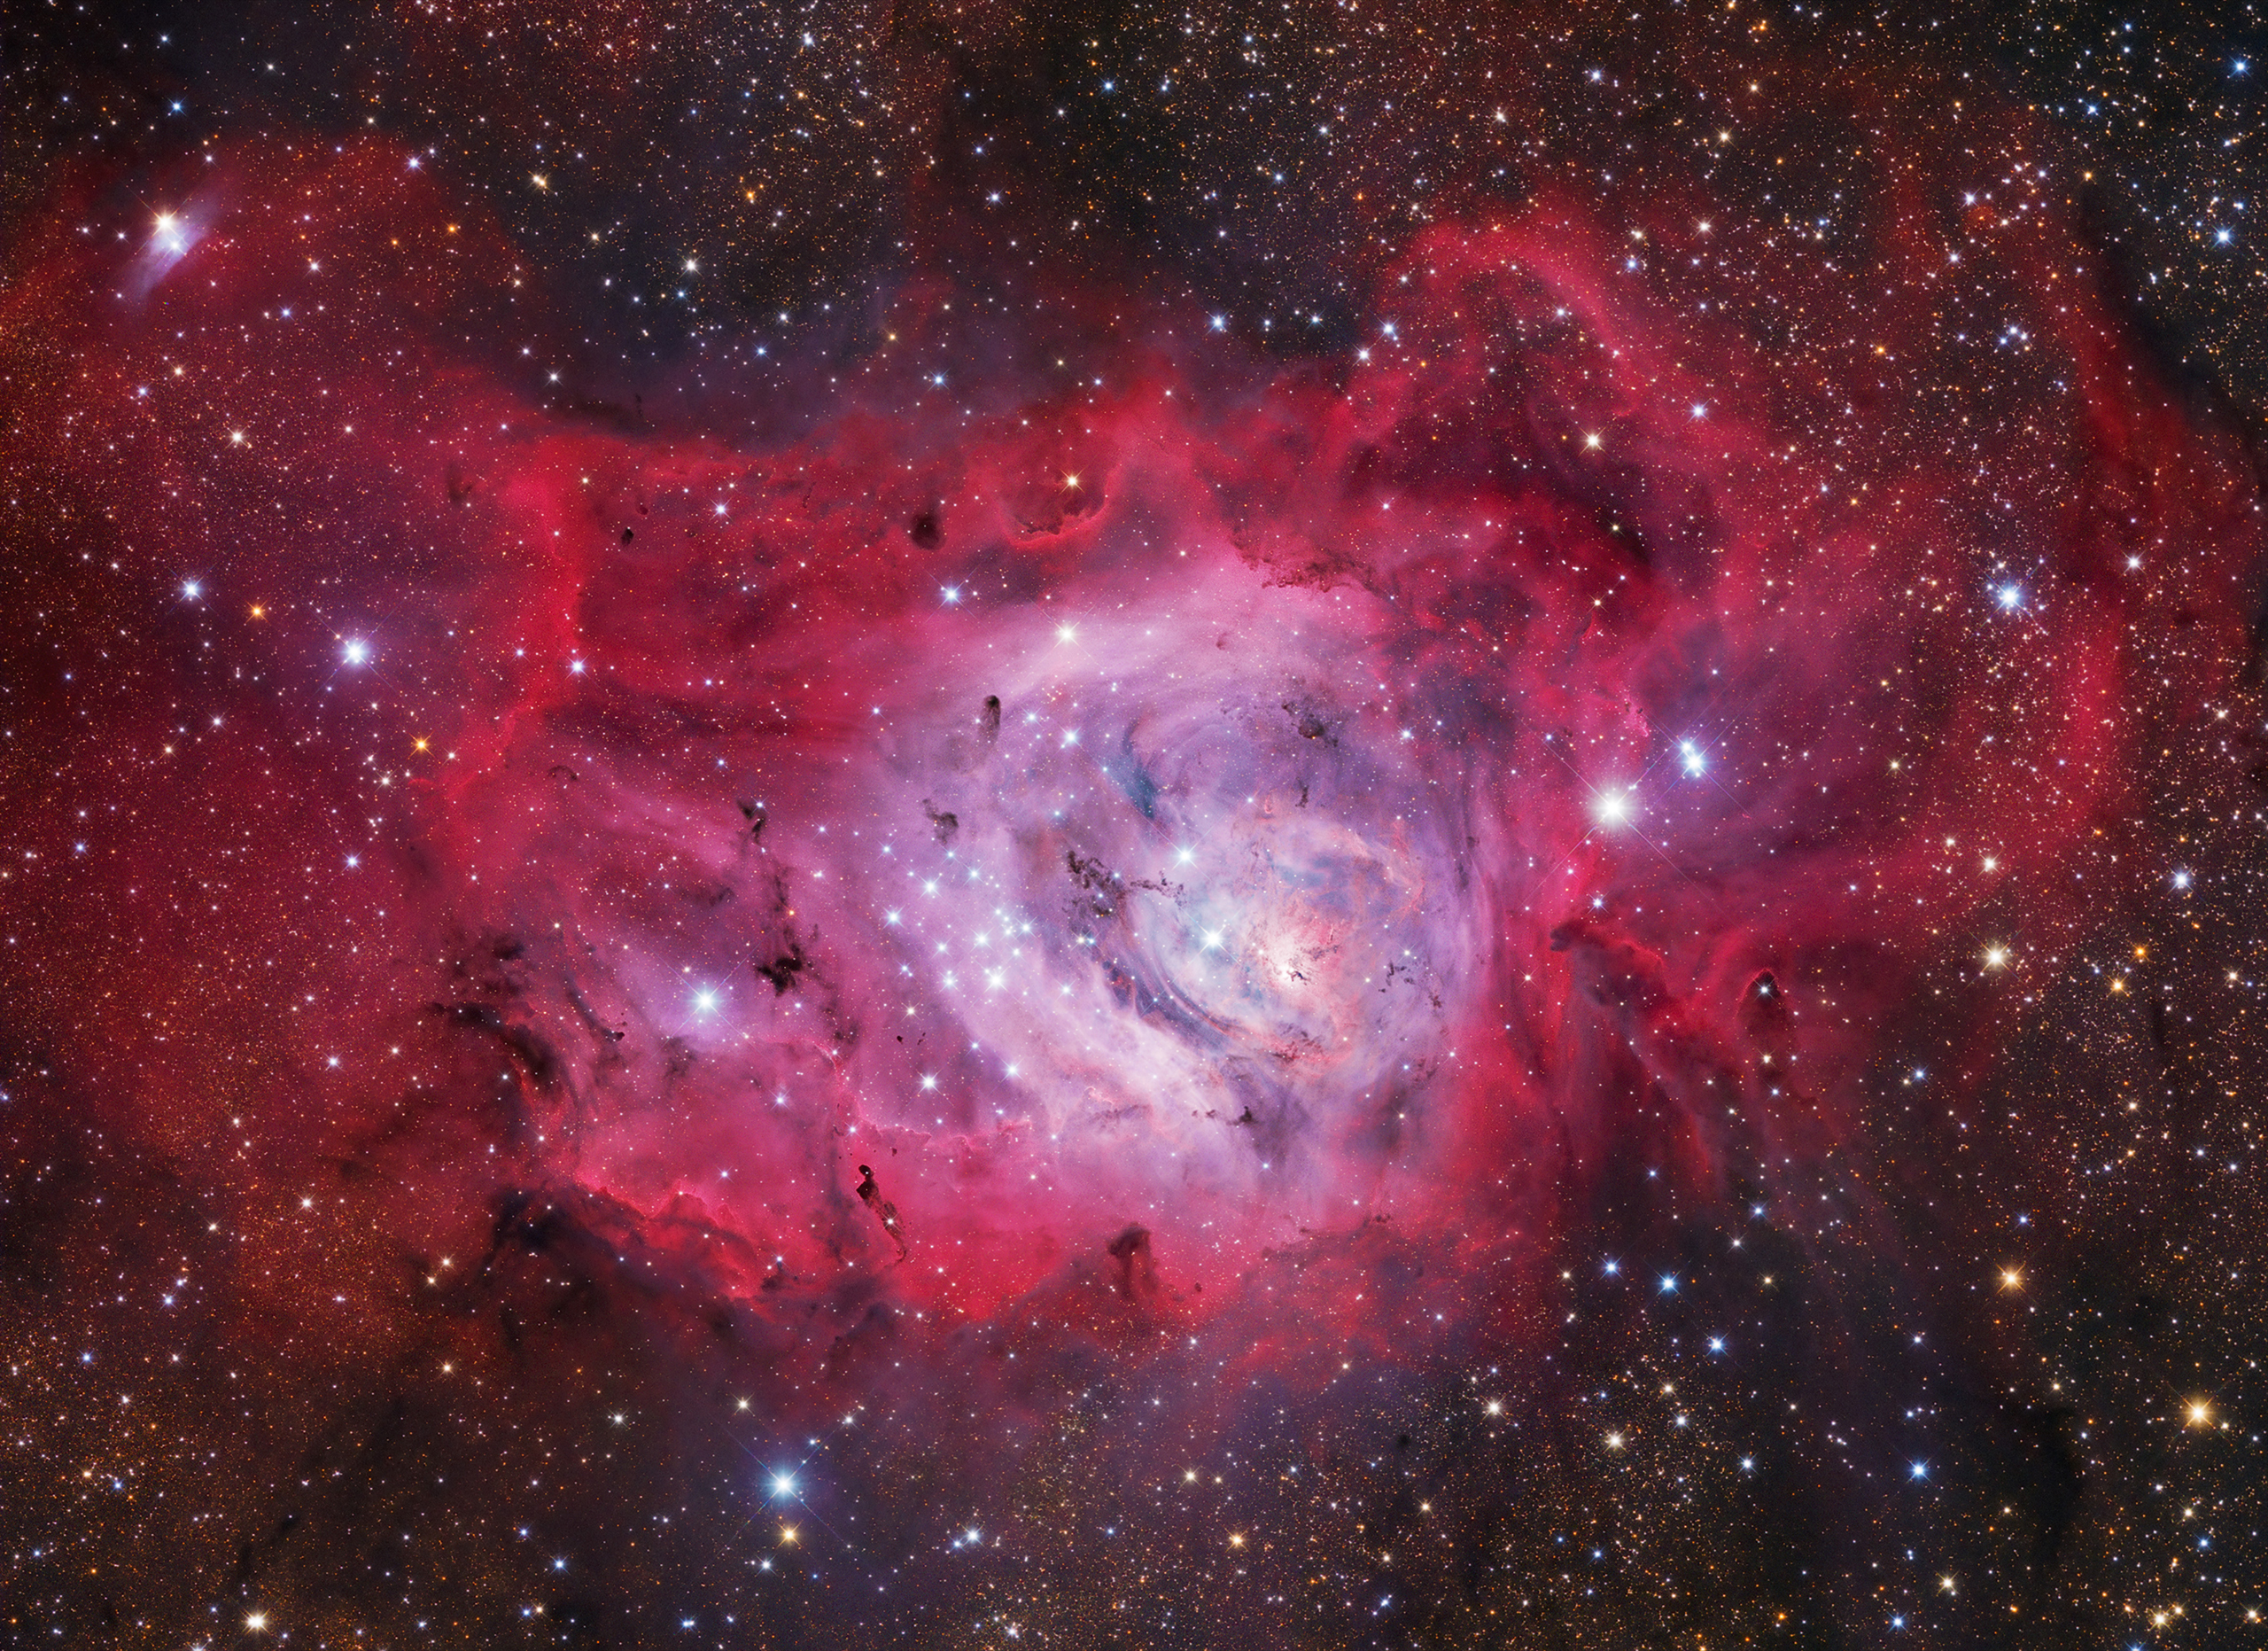 New stars are formed in the undulating clouds of M8, also commonly referred to as the Lagoon Nebula, situated some 5,000 light years from our planet.